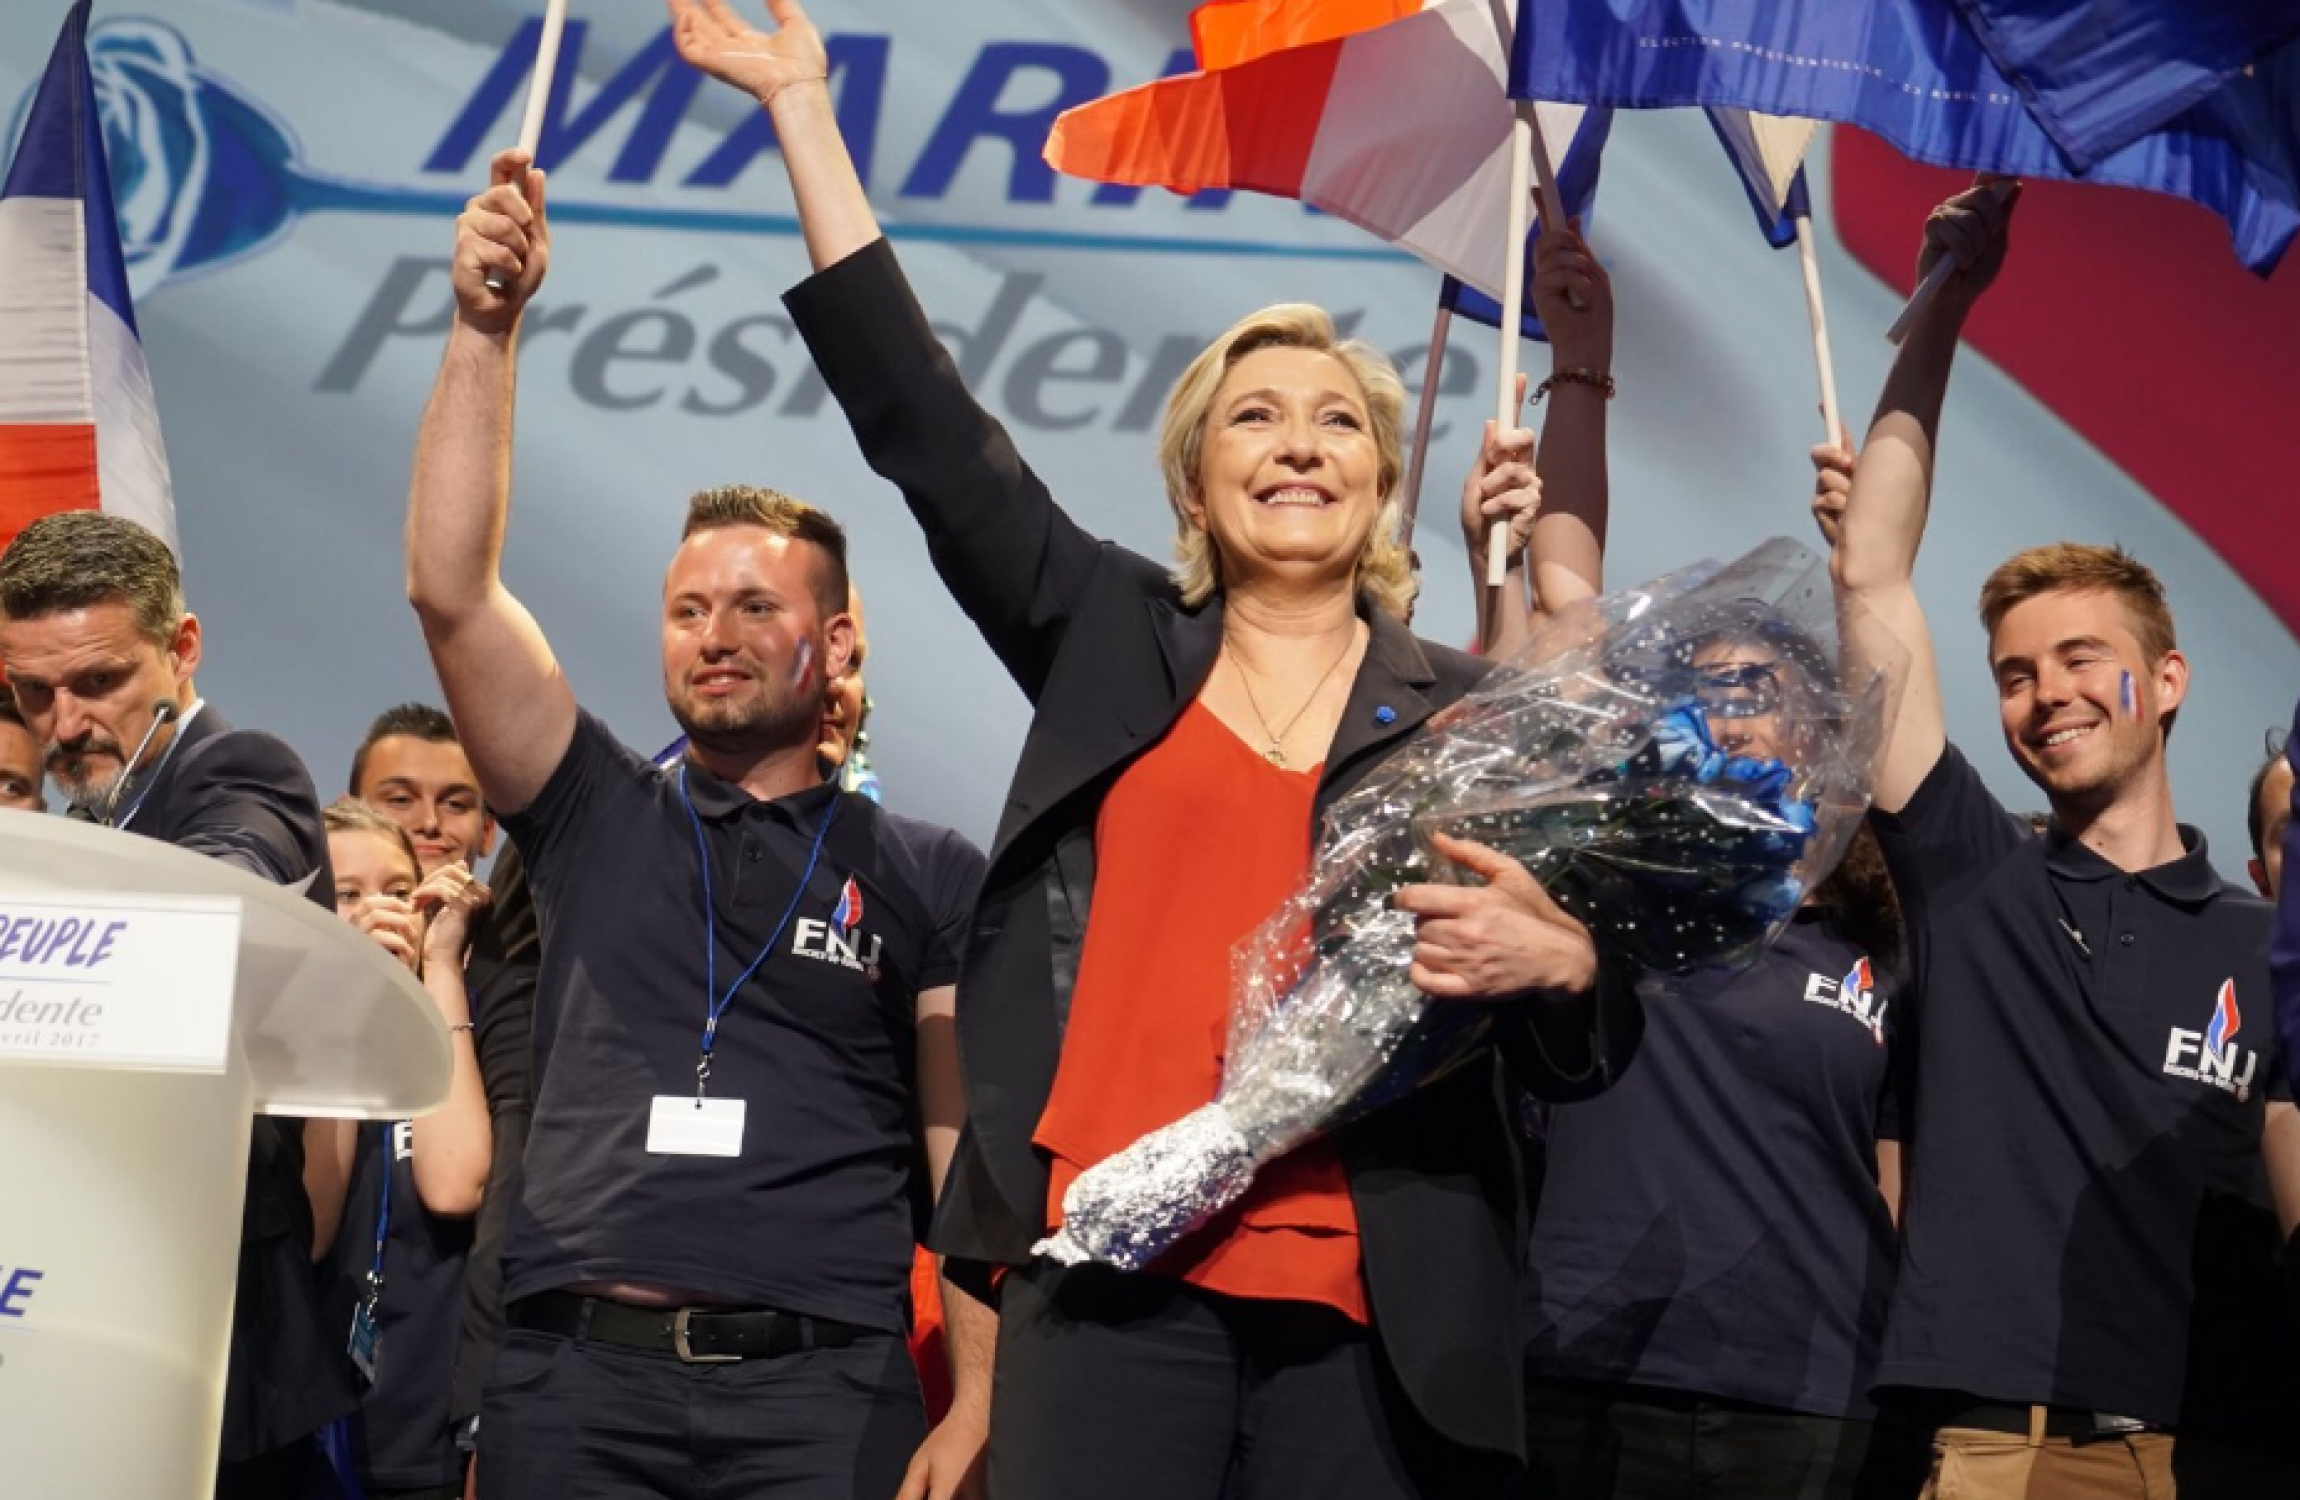 Marine Le Pen Wants All Terrorist Suspects Expelled From France